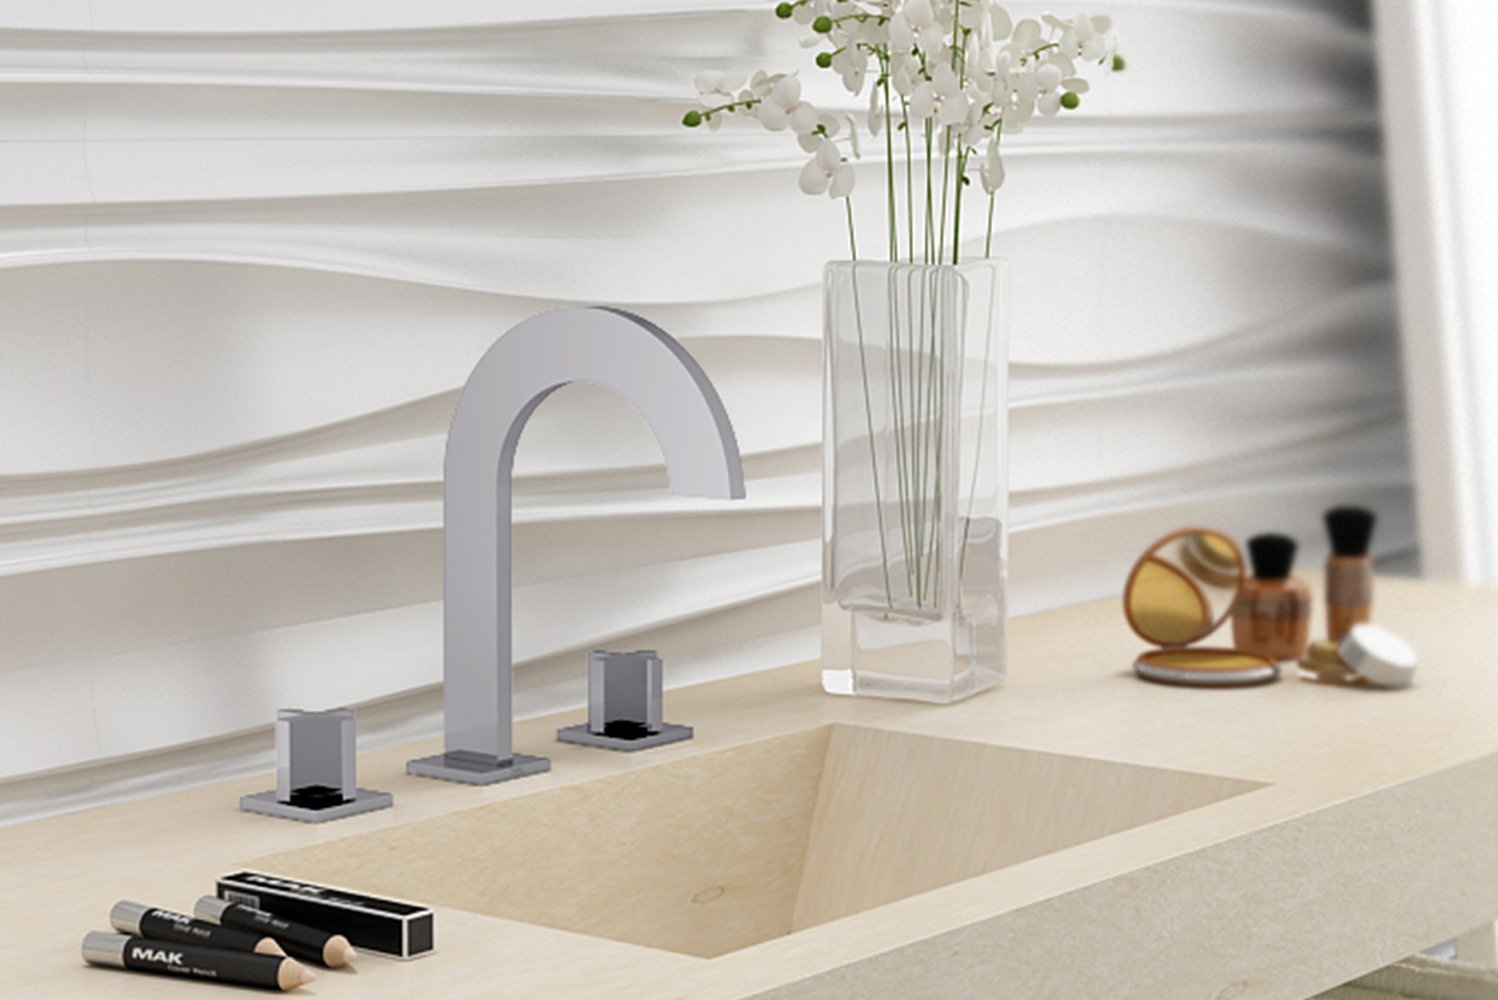 Available with flat, fin-like arched handles or cross handles, Edge has a rounded arc tempered by the masculine sharpness of the faucet's corners.